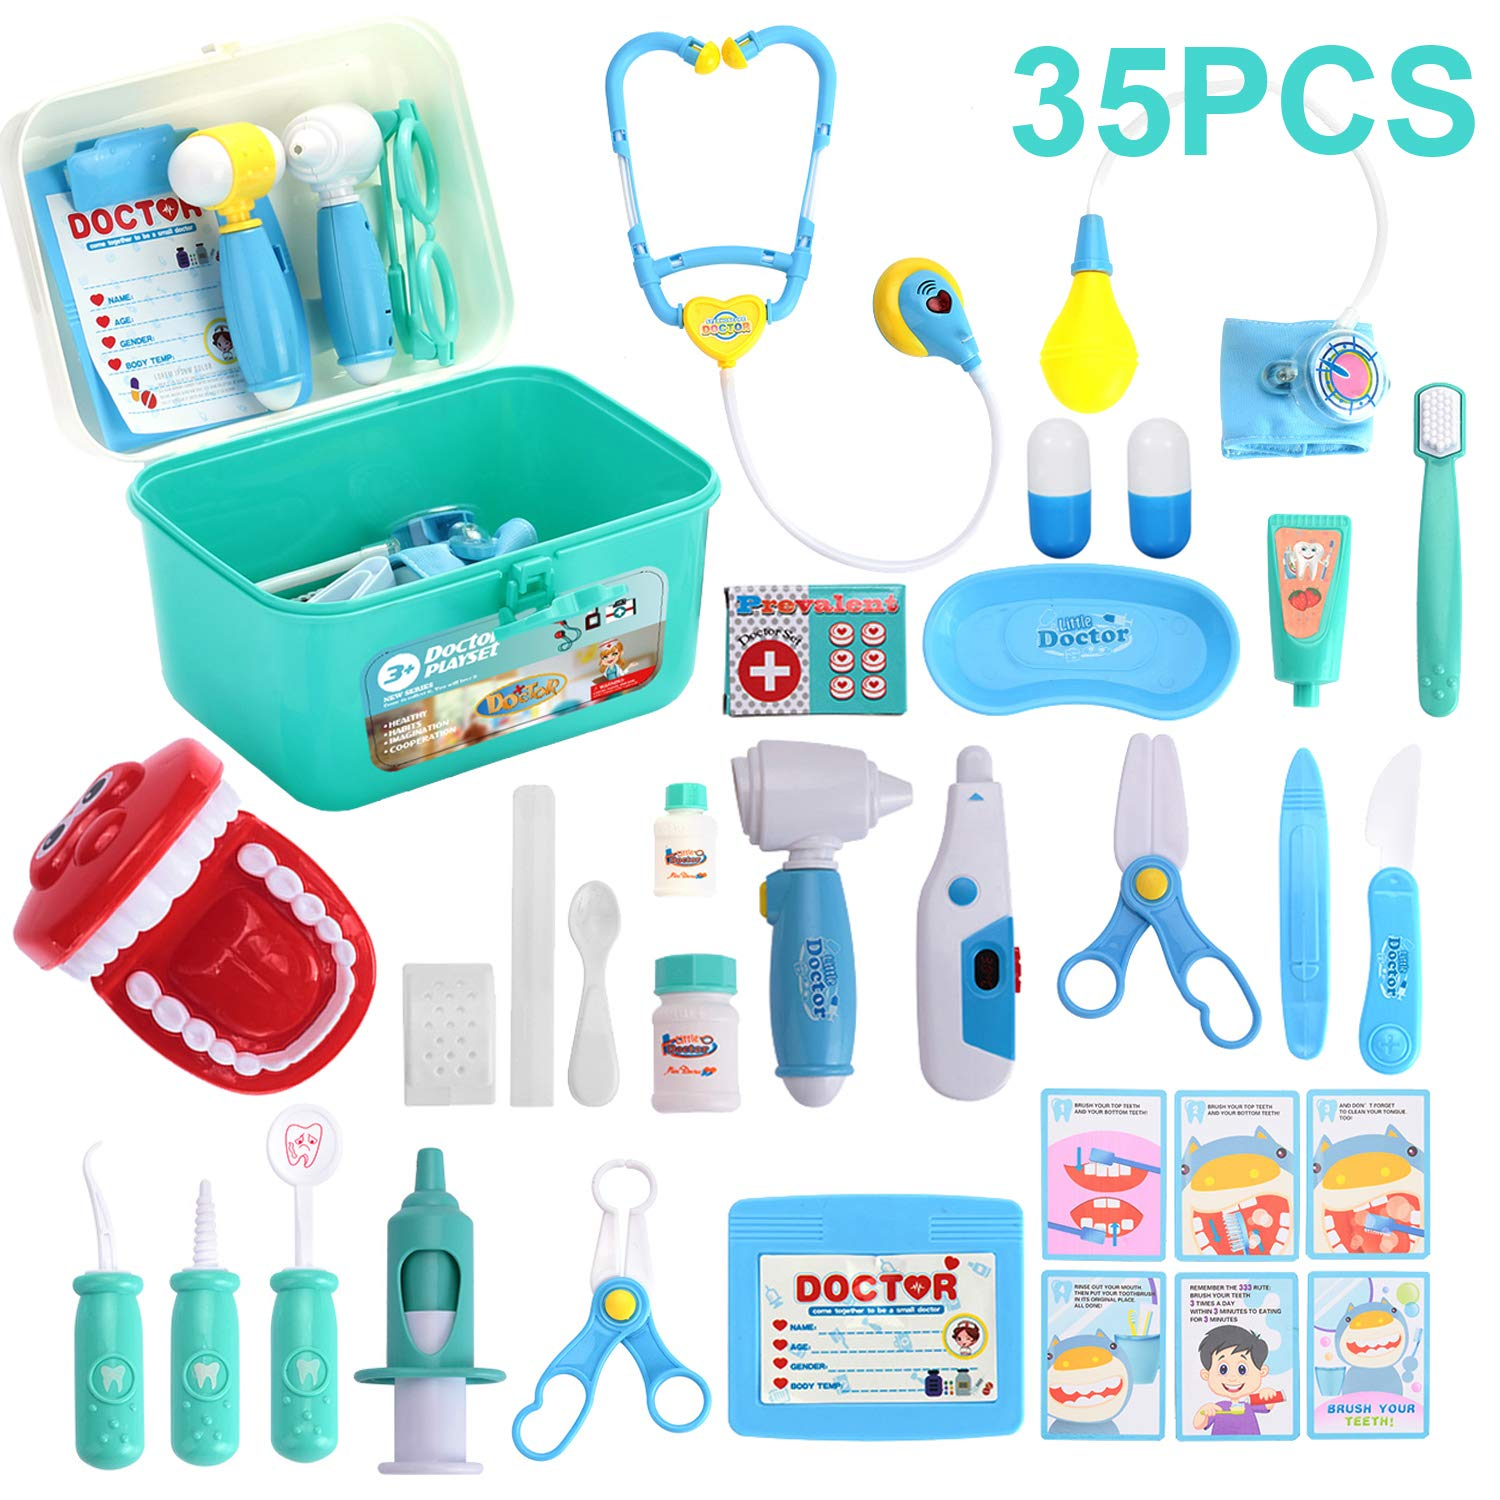 Kids Toys Doctor Kit with 35 Pieces Dentist's Equipment, Durable Medical Kit Pretend Holiday/Birthday Gift for Kids, Packed in a Sturdy Gift Case by Semaco